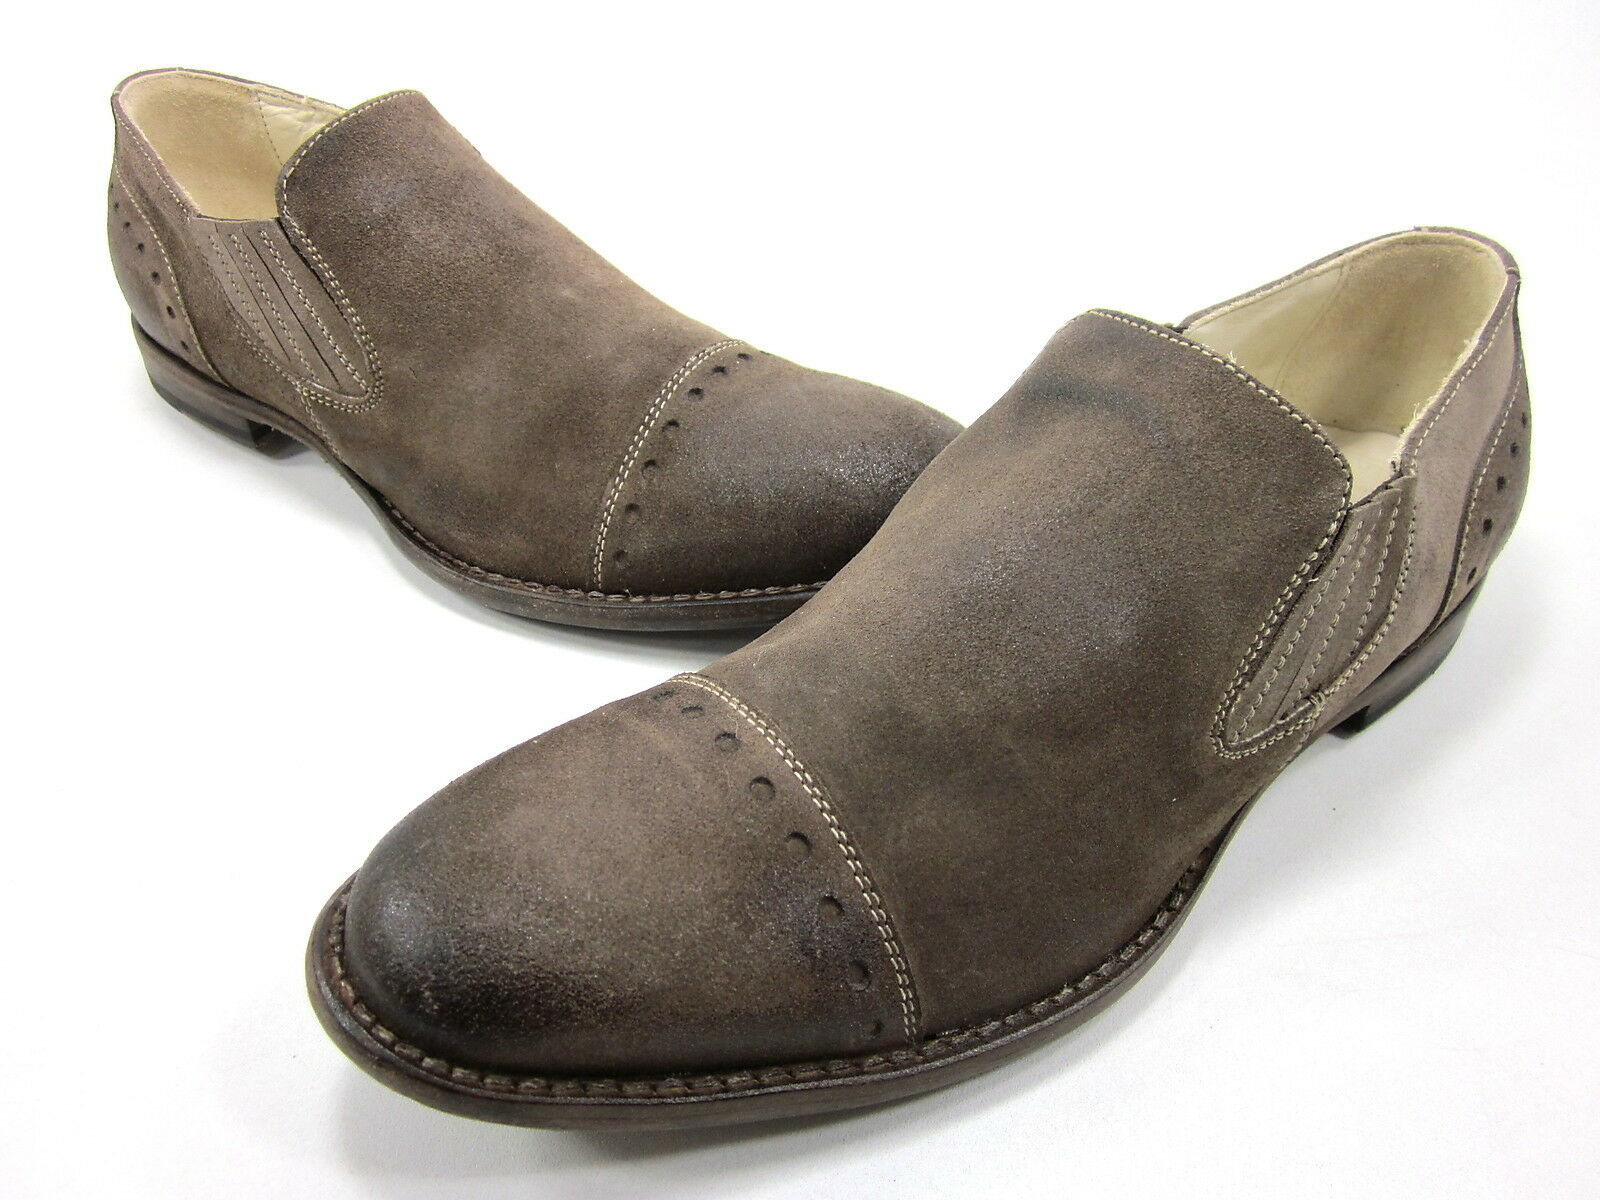 AREA FORTE, 5962, LEATHER DRESS SHOES, MENS, CORIUM 311, EURO 40, NEW W O BOX